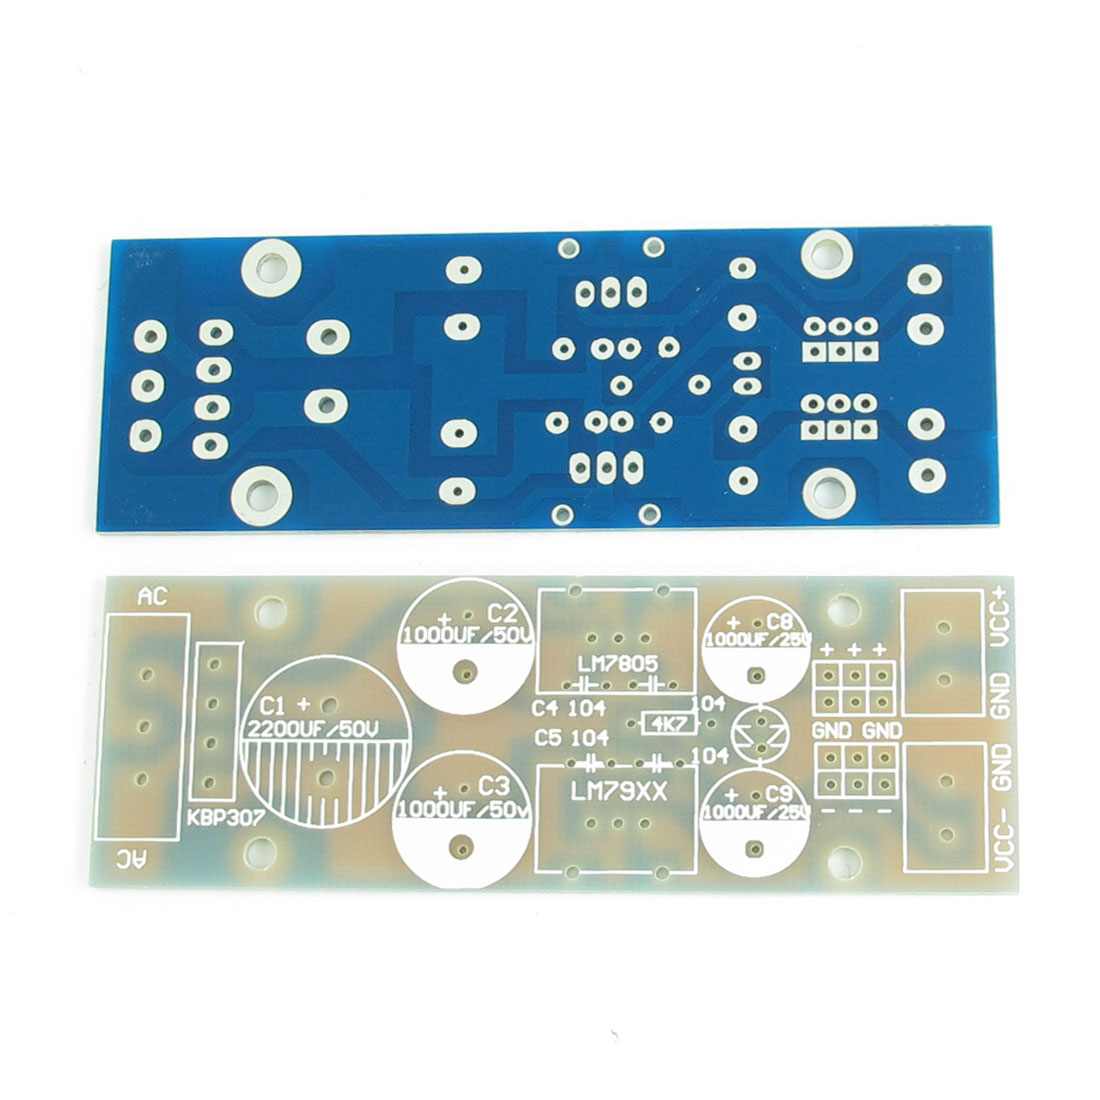 L7805 L7905 Positive Negative Voltage Output Regulator Stabilization Blank PCB Board 90mm x 30mm 2Pcs